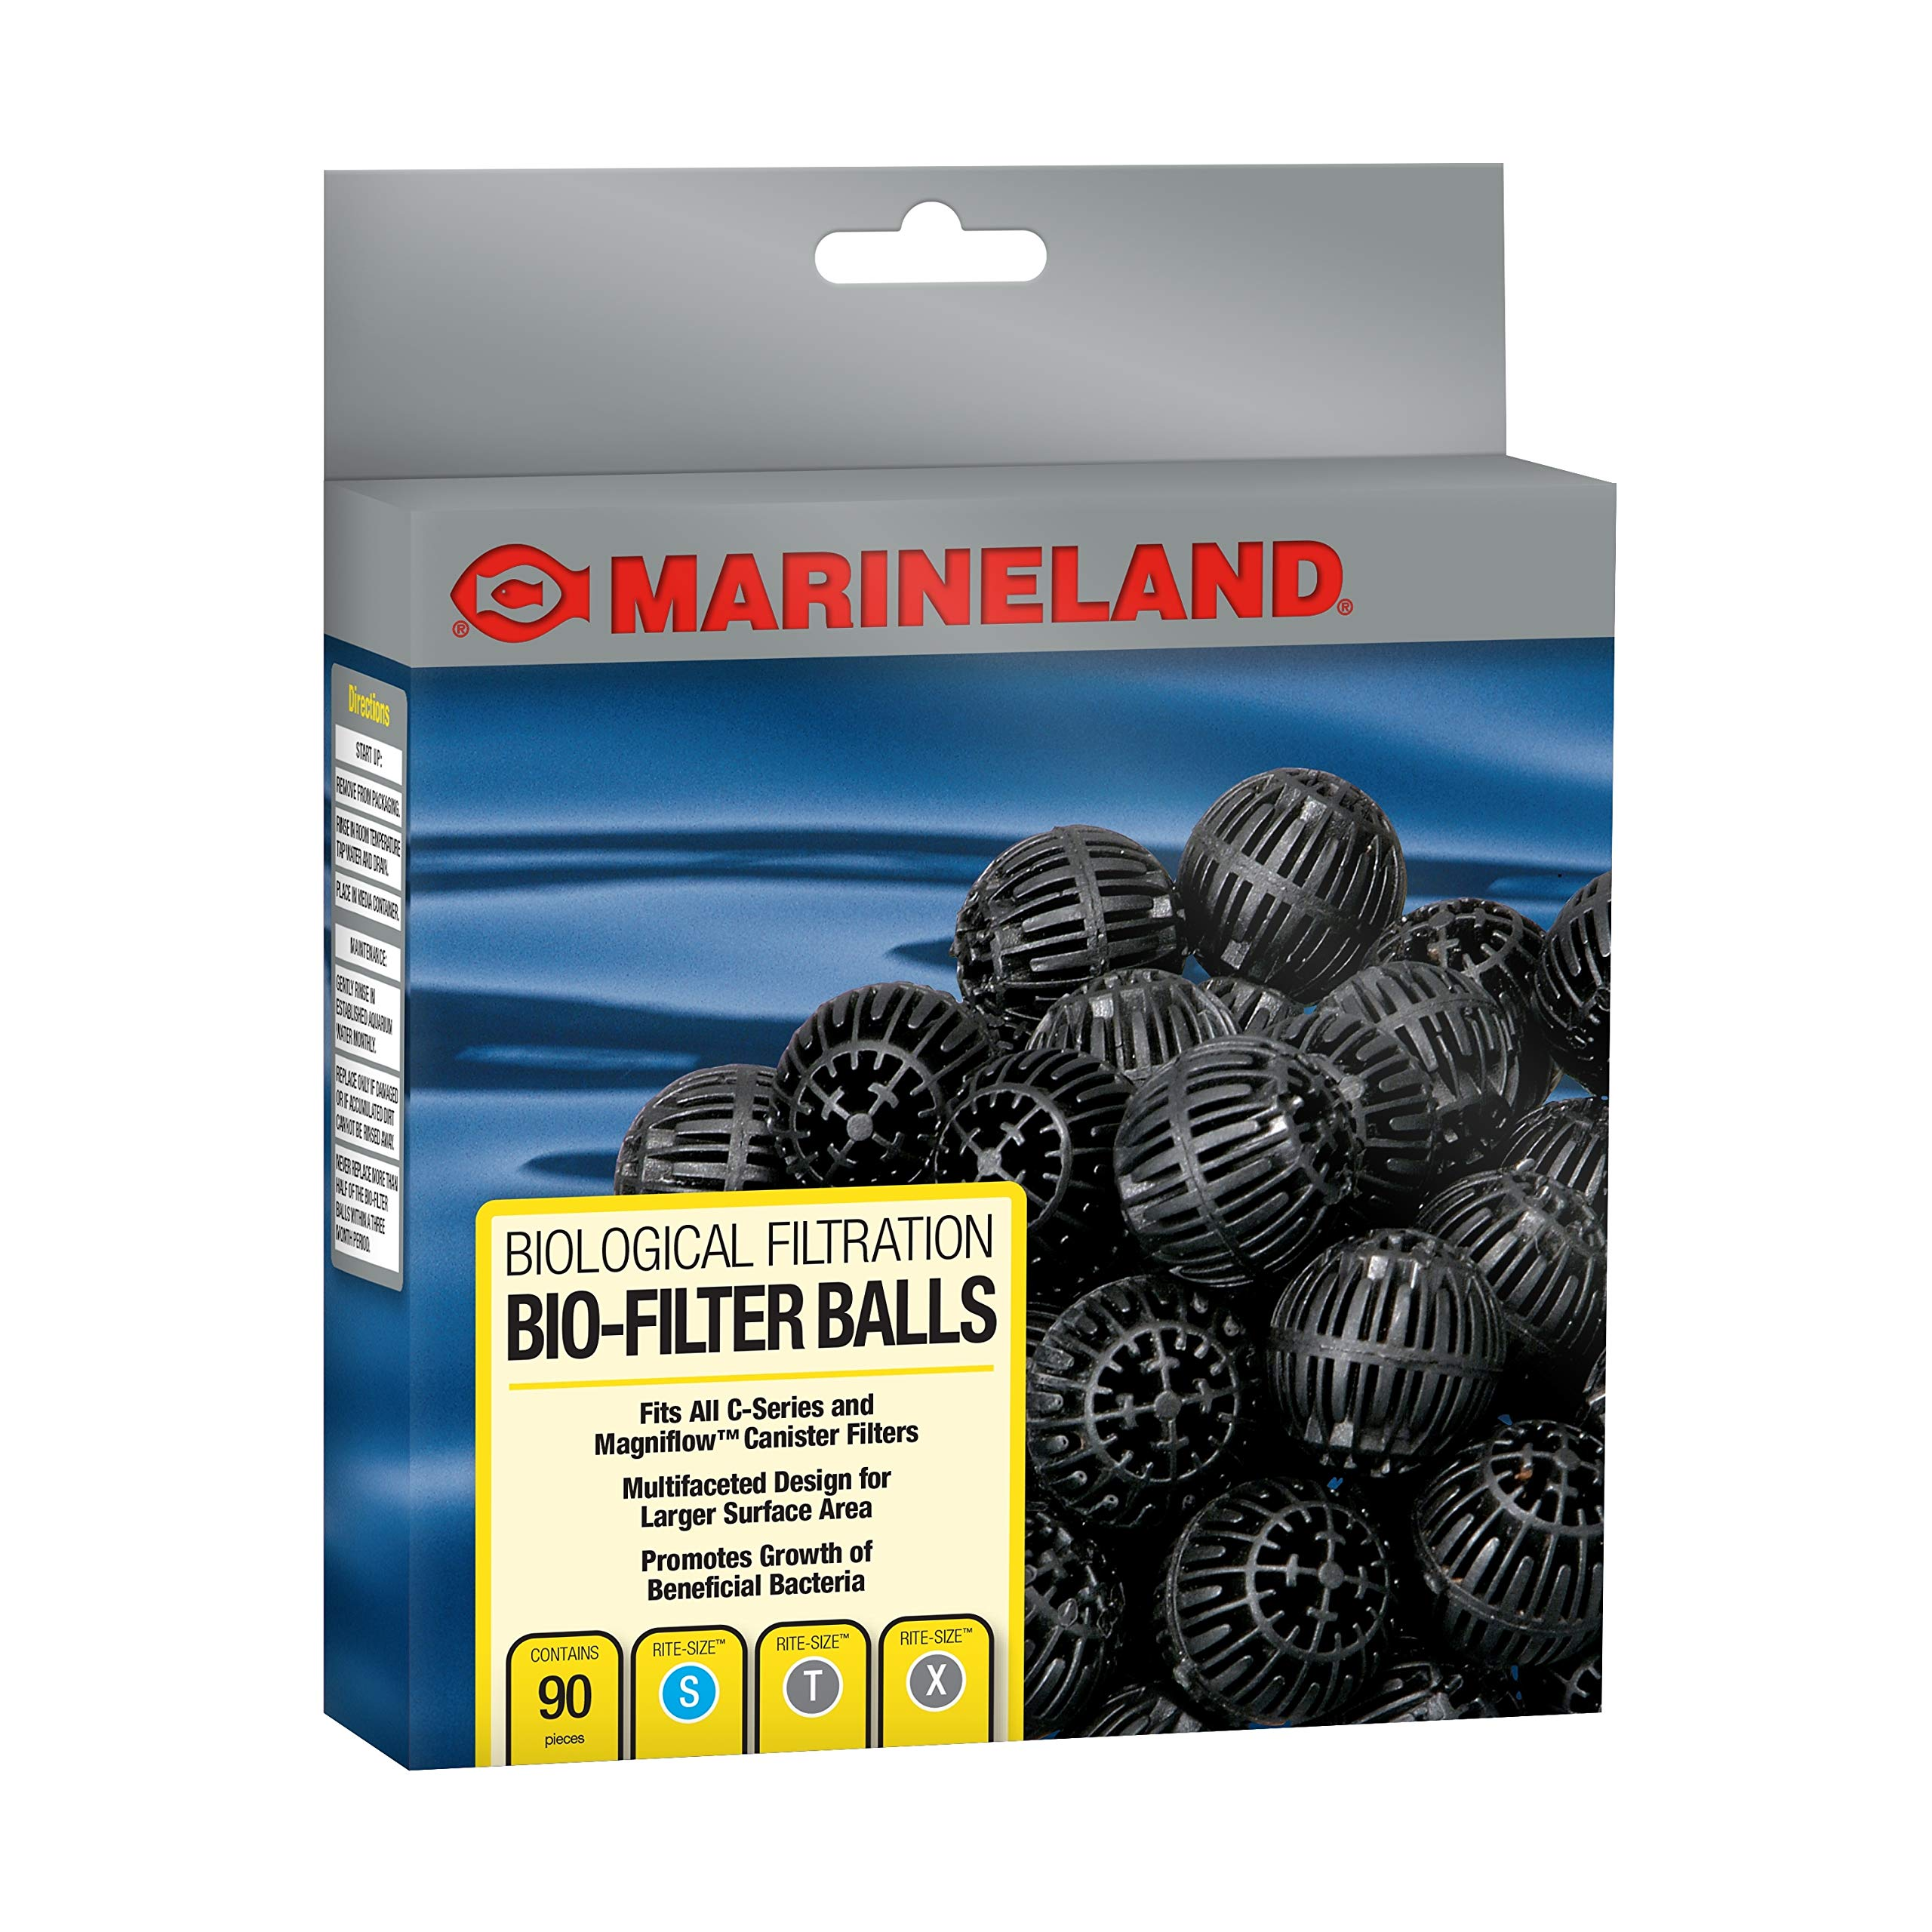 Marineland Bio-Filter Balls, Supports Biological aquarium Filtration, Fits All C-Series Canister Filters